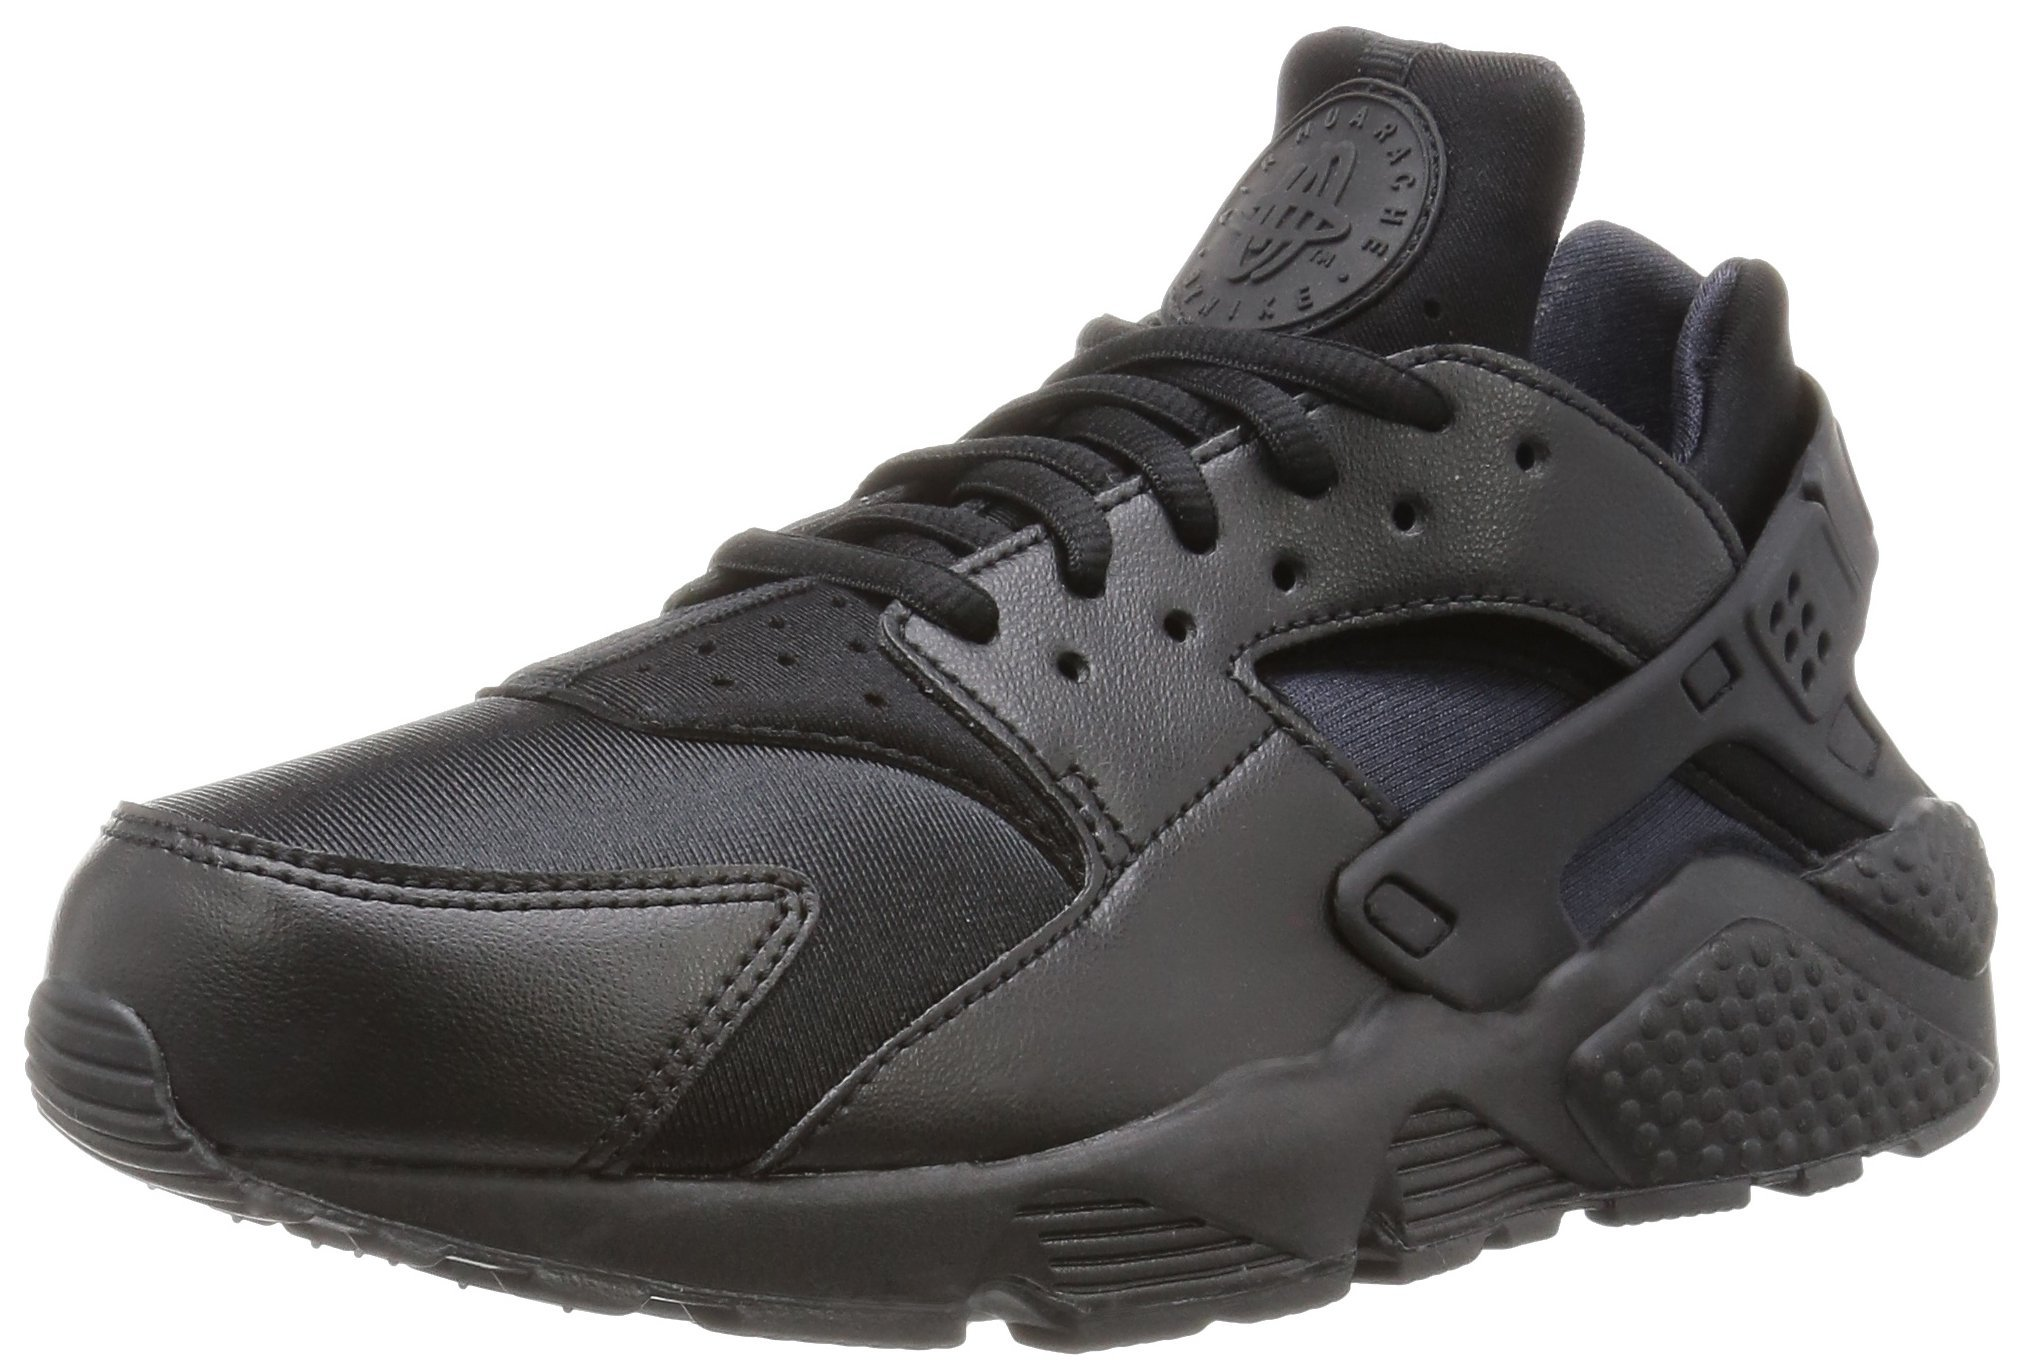 Nike Women's Air Huarache Run Black/Black Running Shoe 10 Women US